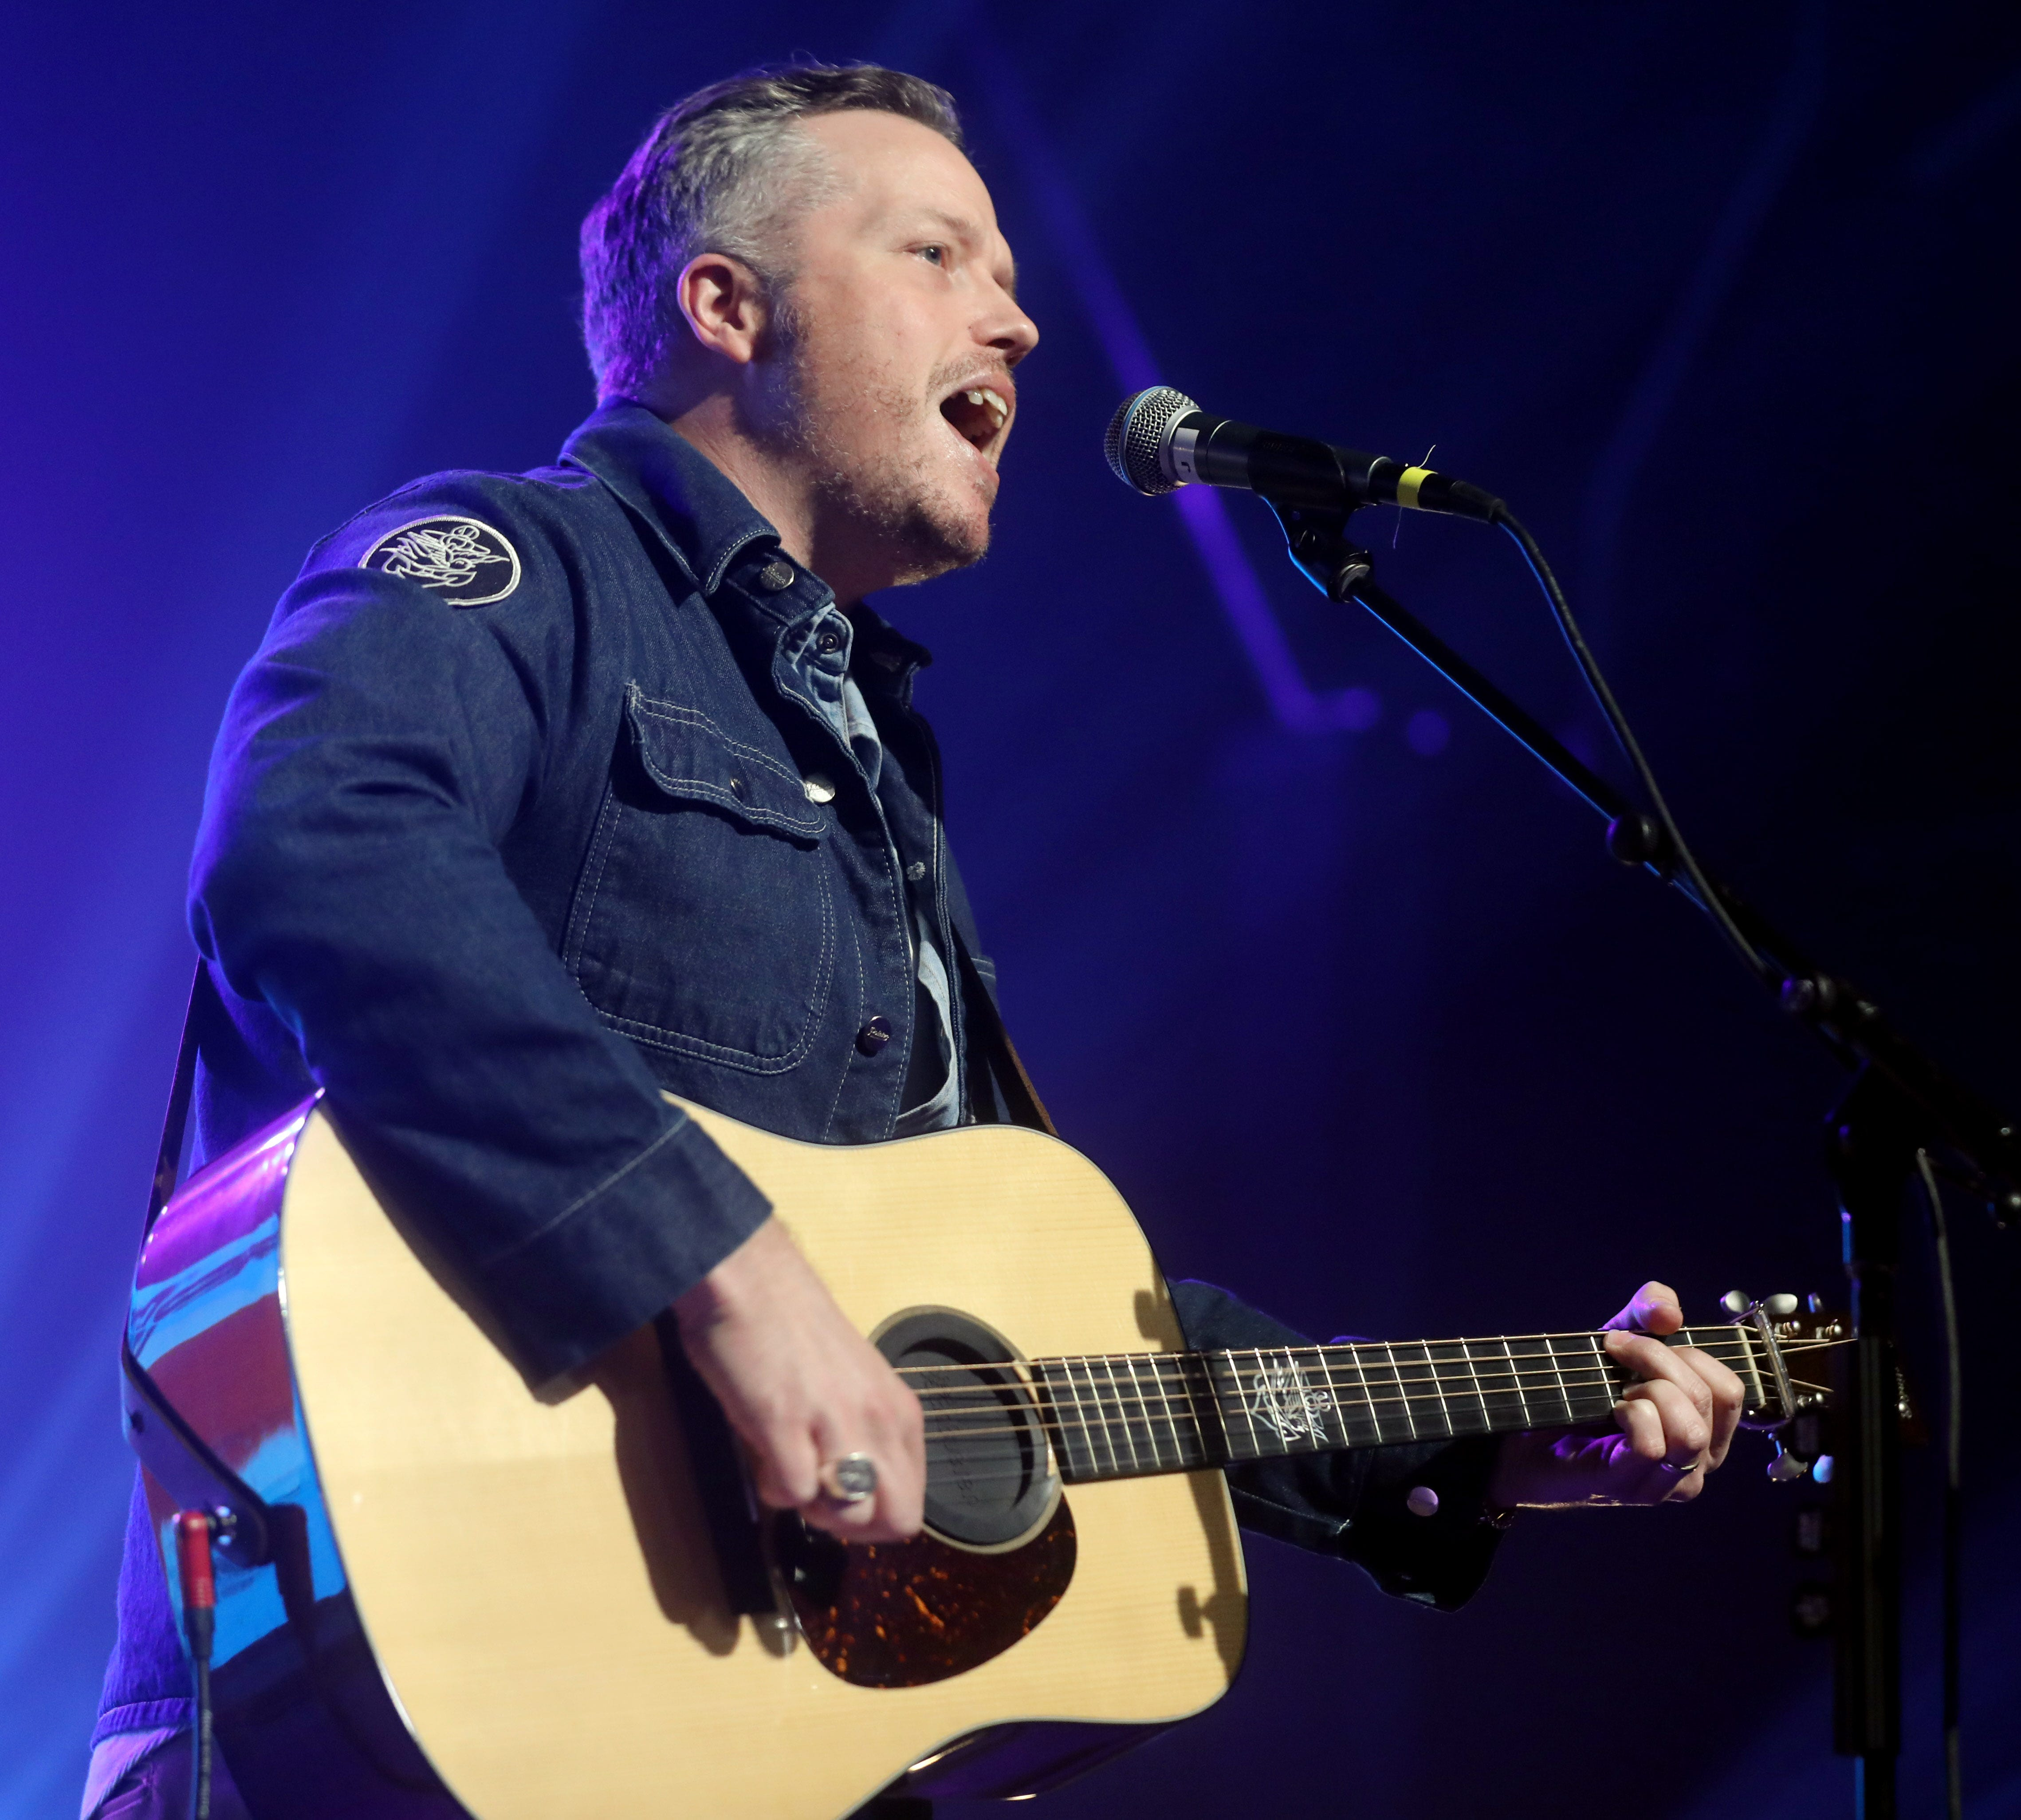 Jason Isbell to play socially distanced concerts in Tennessee